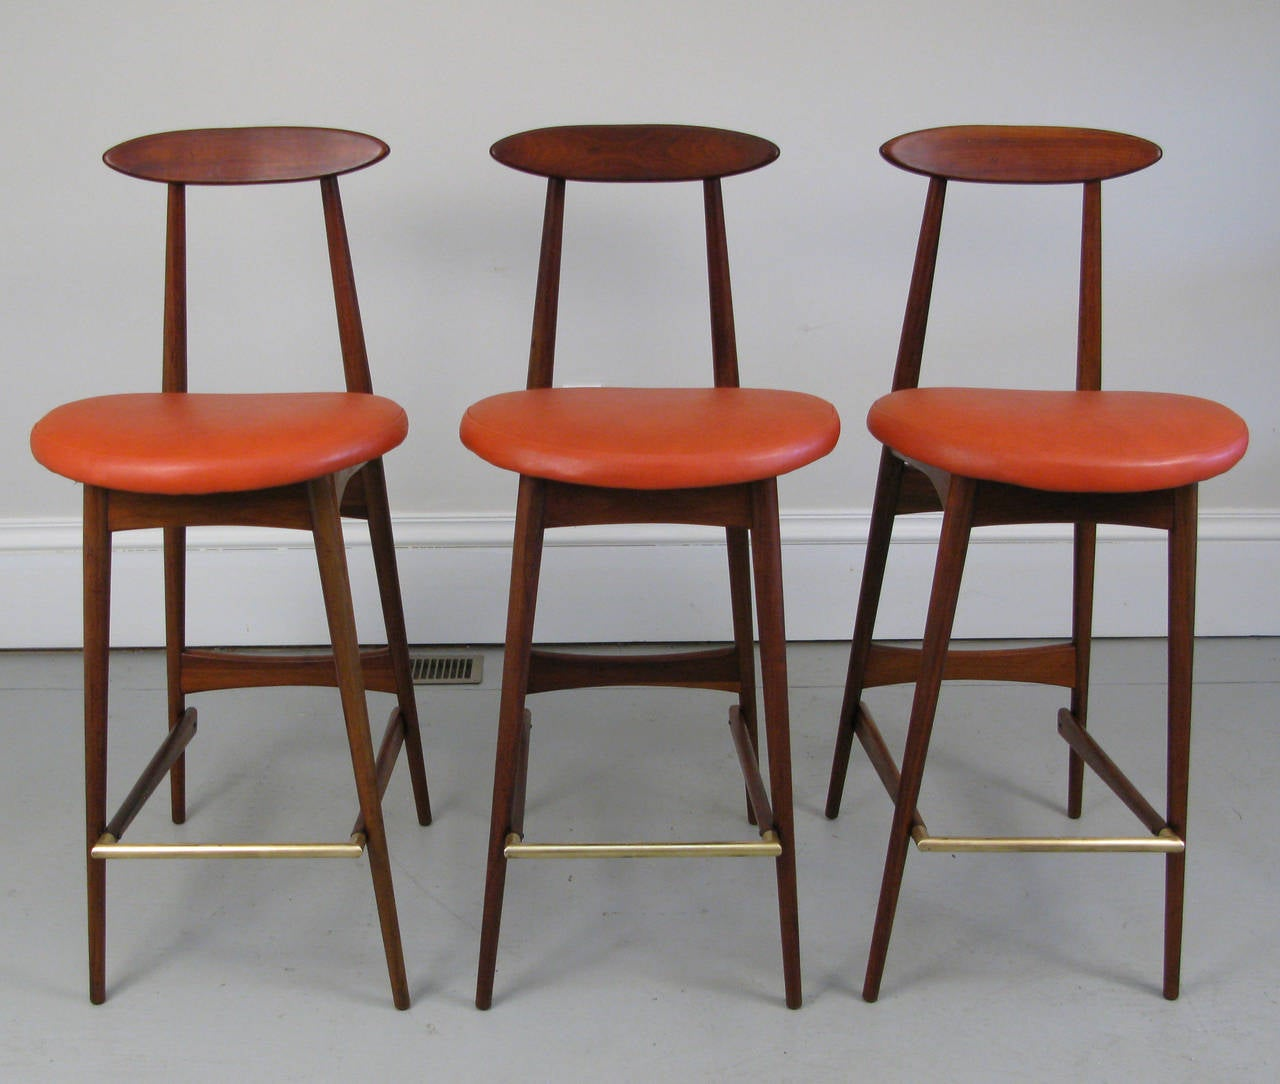 three midcentury bar stools by adrian pearsall at stdibs - three midcentury bar stools by adrian pearsall